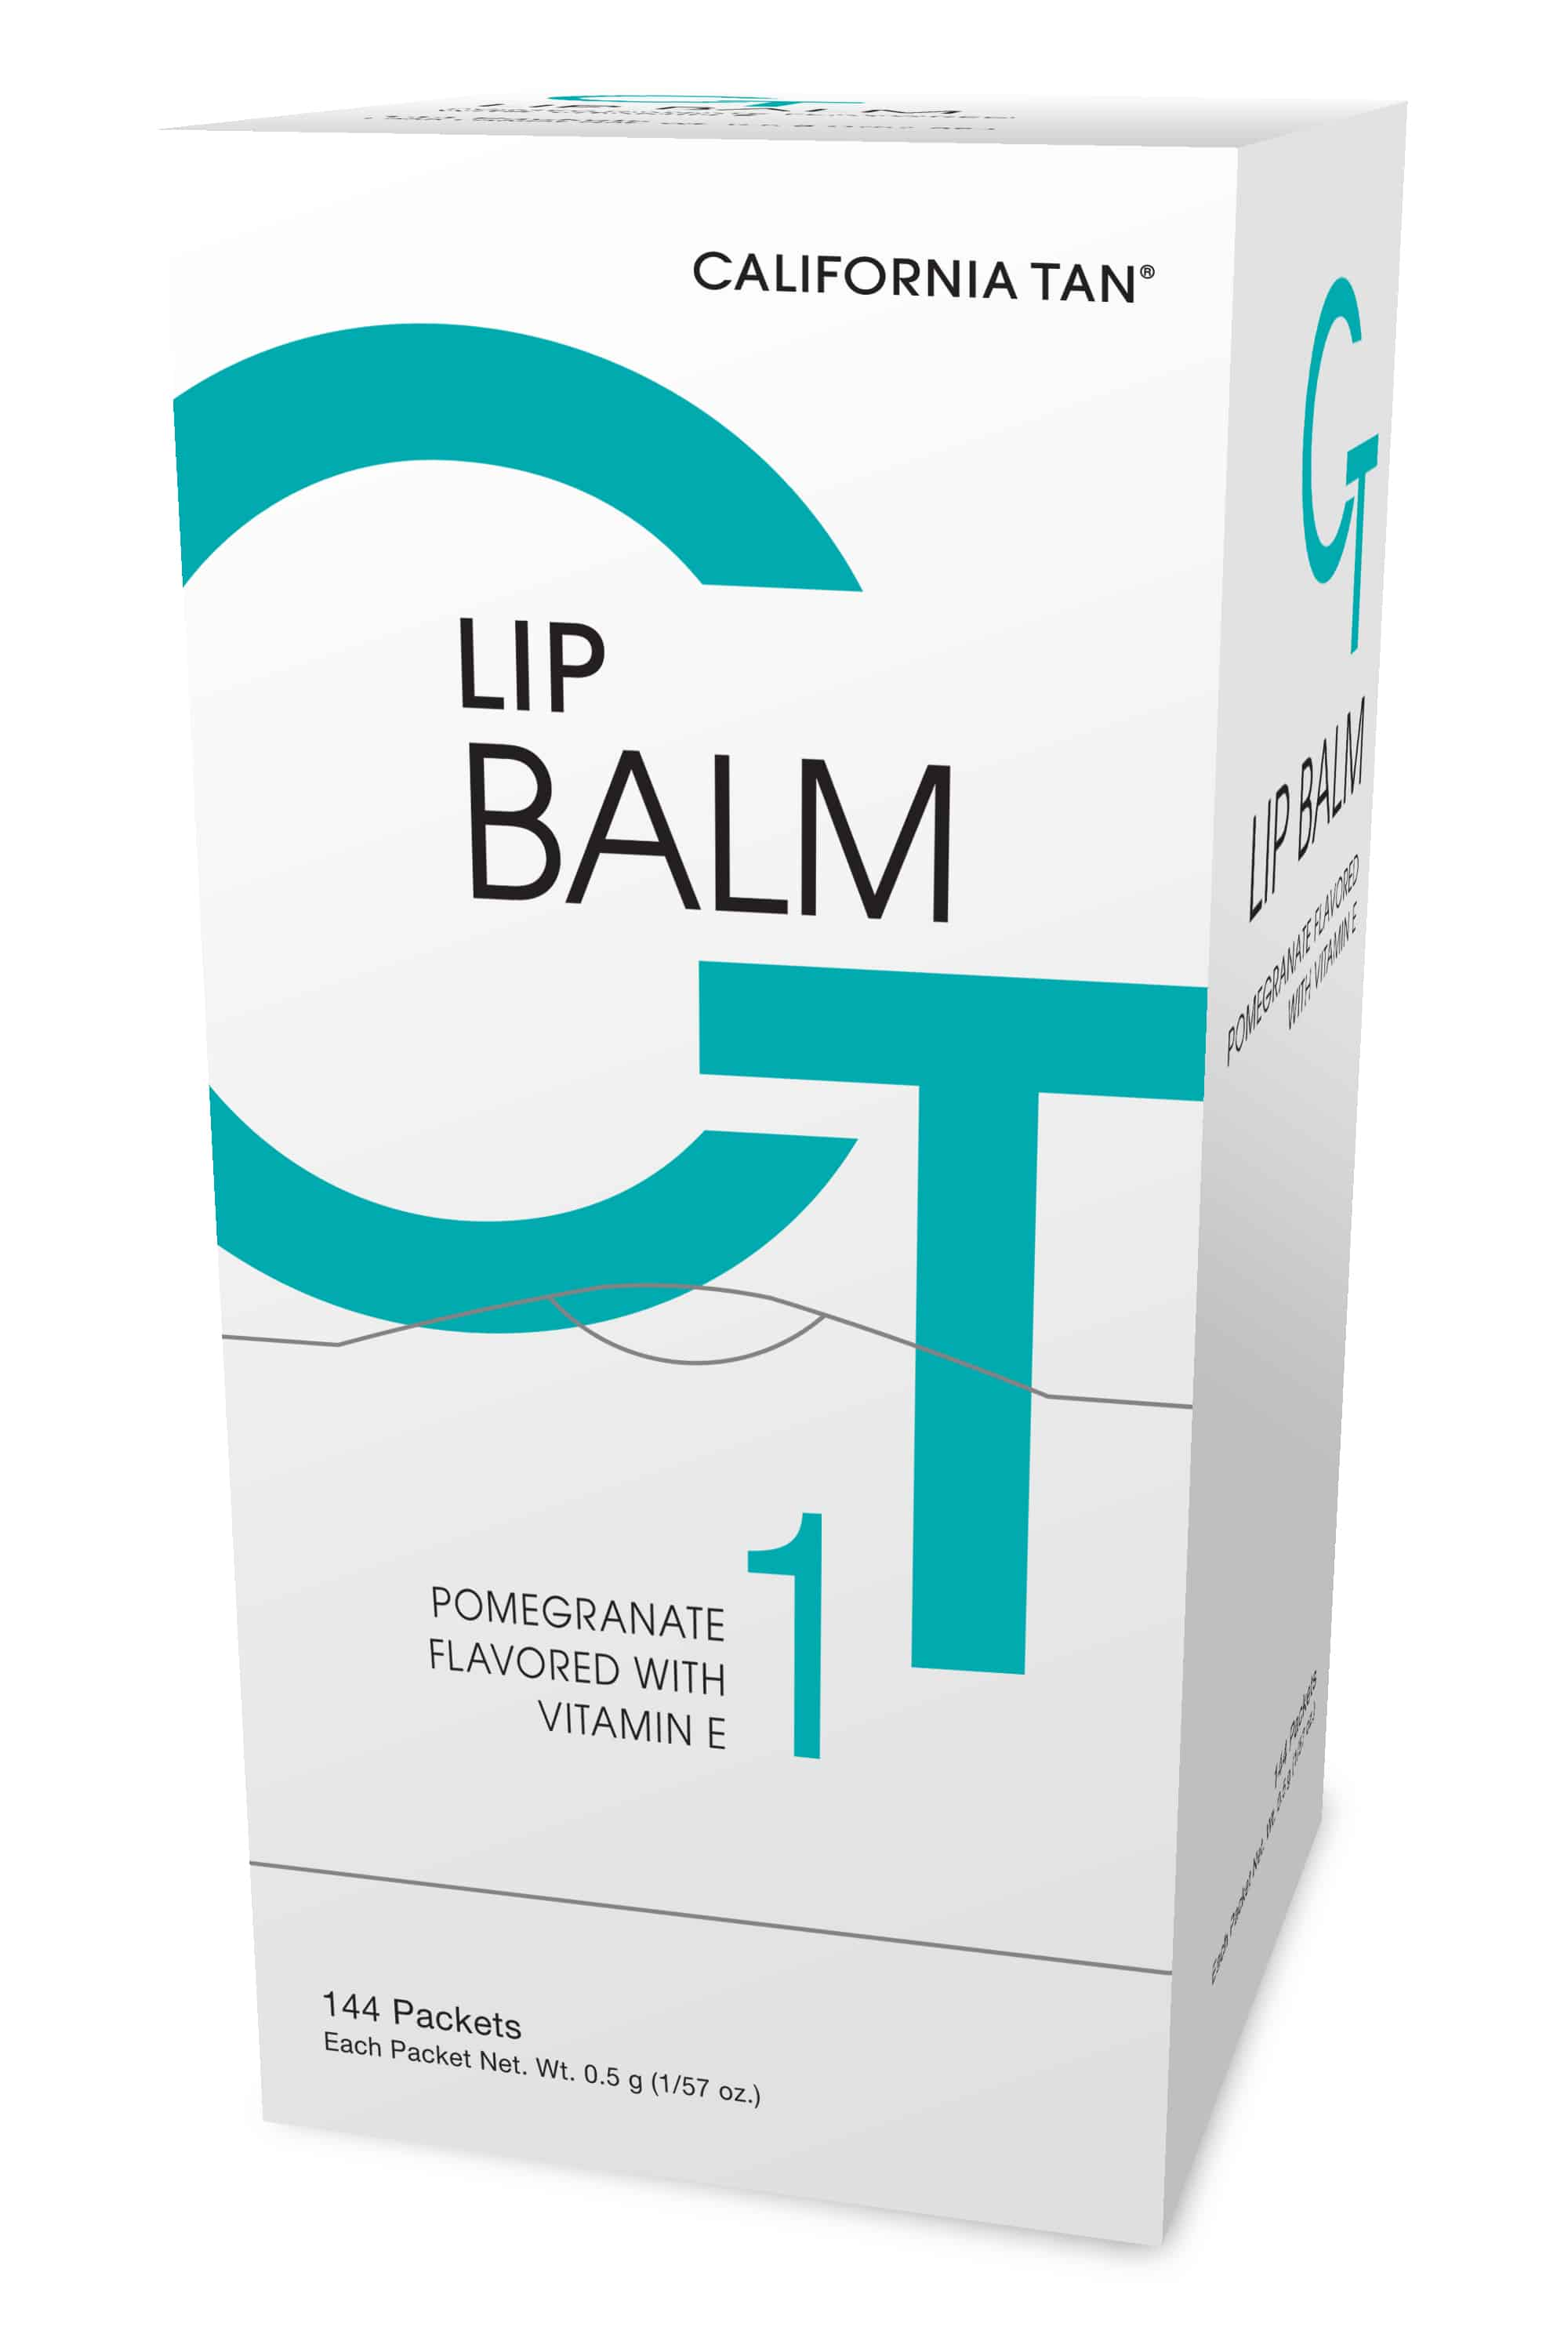 balm singles Buy professional makeup and beauty products at elf cosmetics that are affordable for any budget cruelty-free makeup and tools with free shipping on orders over $25.